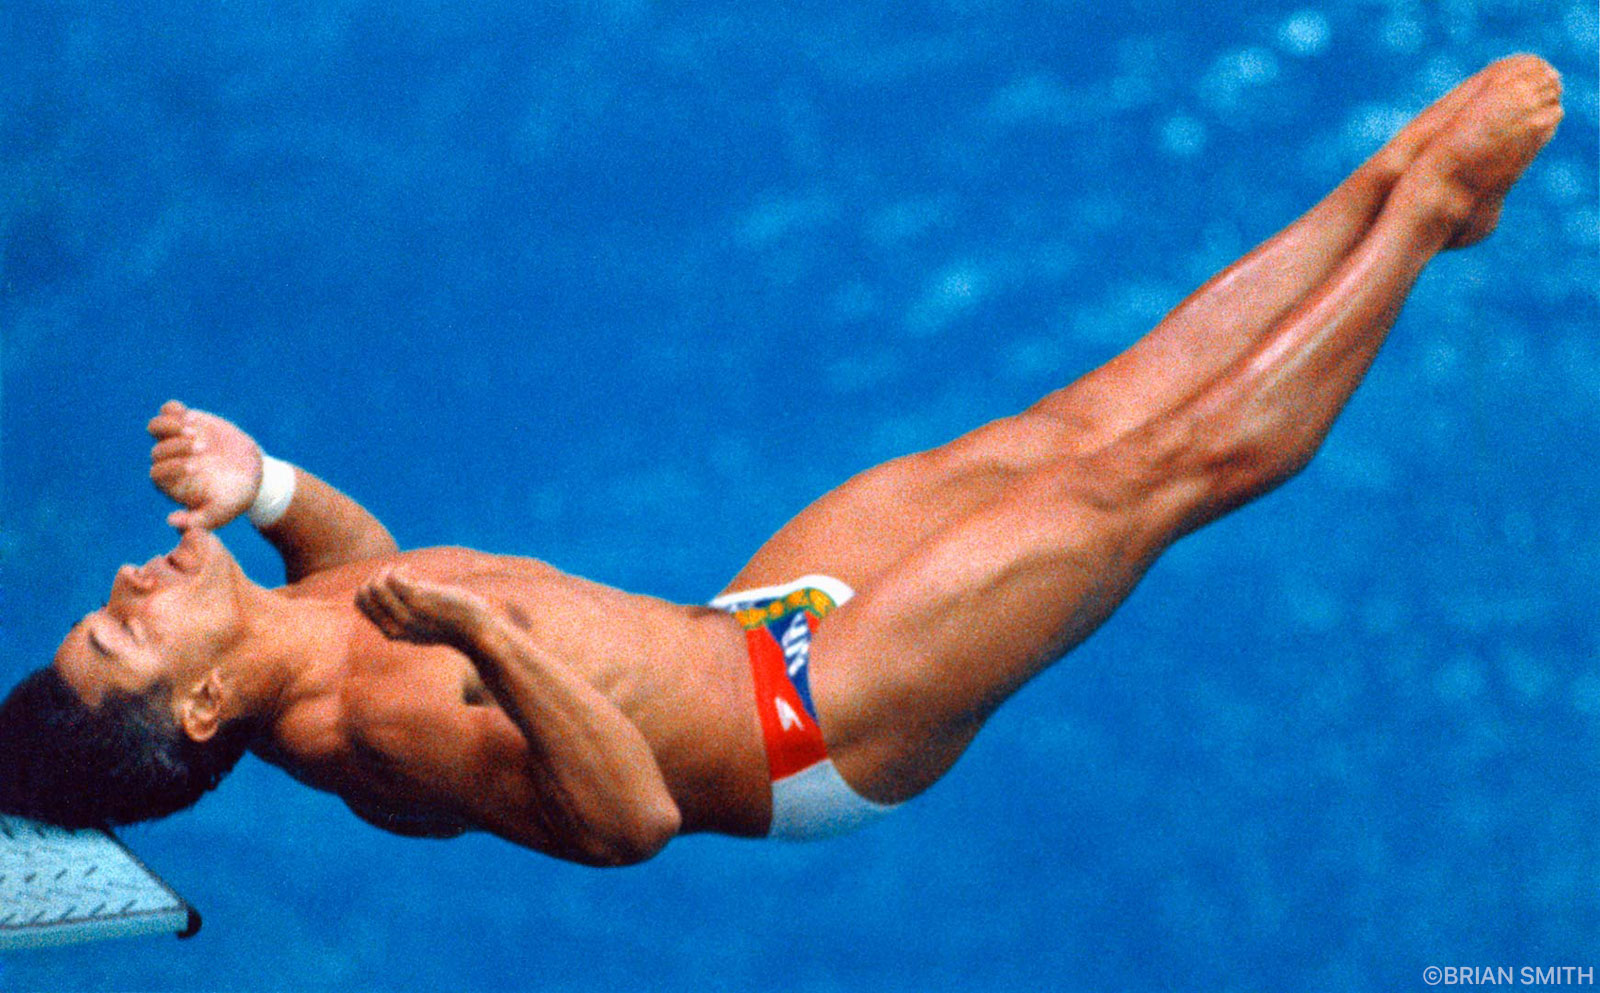 Greg Louganis hits his head on the diving board 1988 Seoul Olympics photographed by Brian Smith